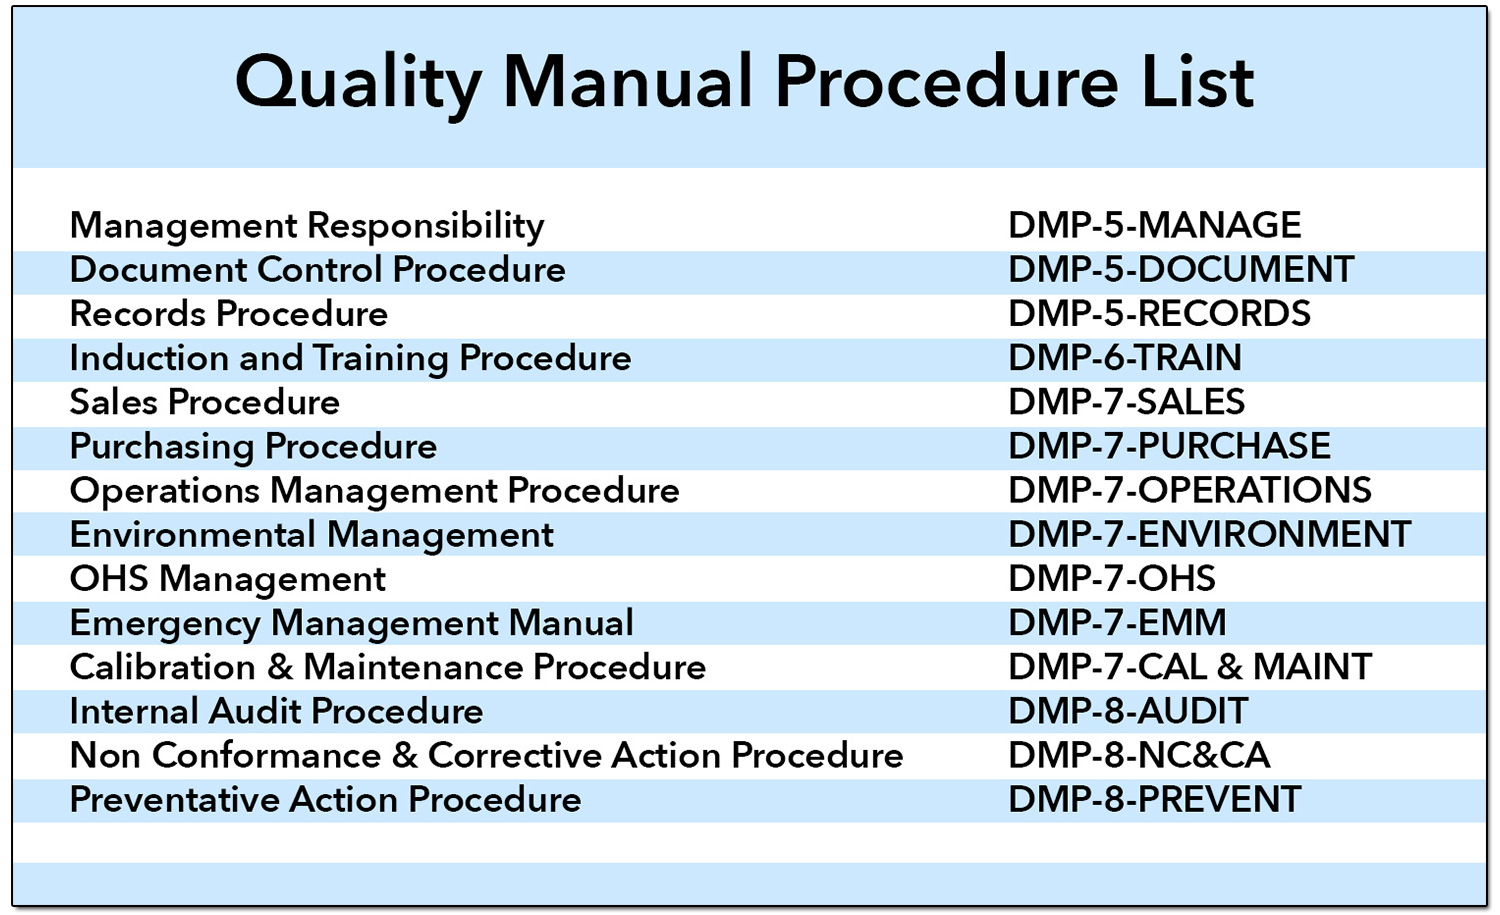 quality manual procedure list table of contents